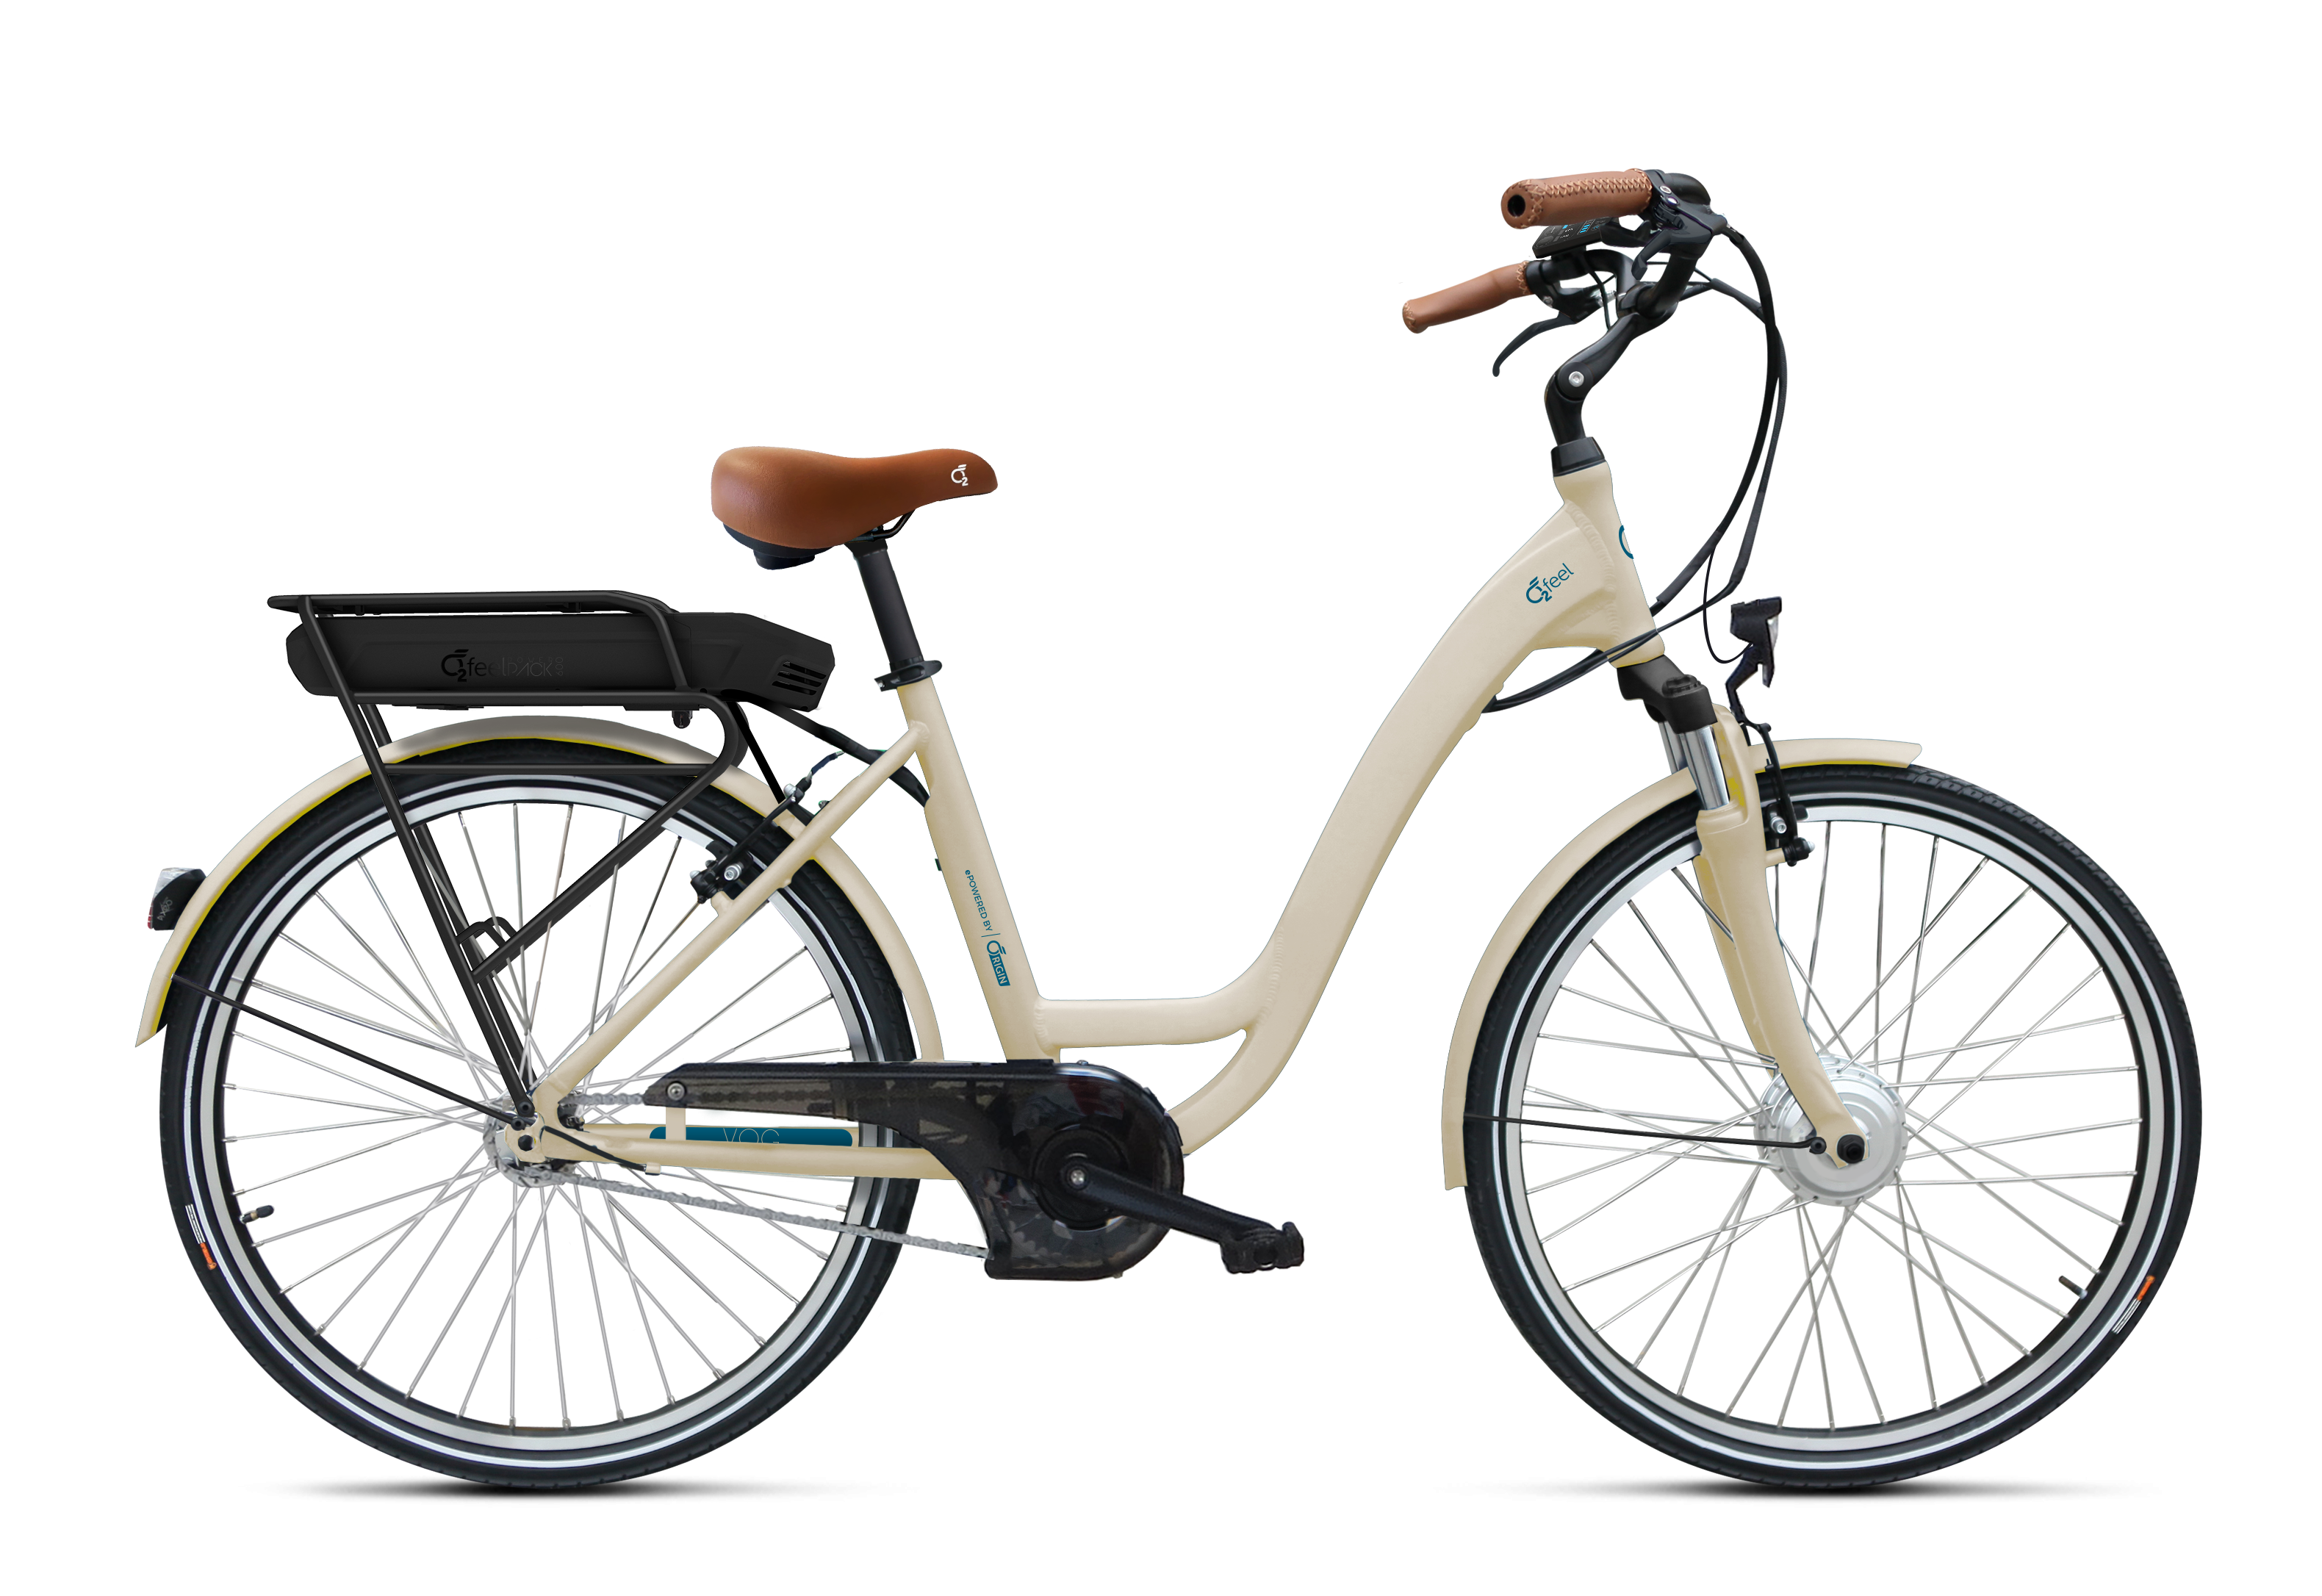 https://w8w5m3f8.stackpathcdn.com/19454/velo-electrique-urbain-vog-on7-400wh.jpg